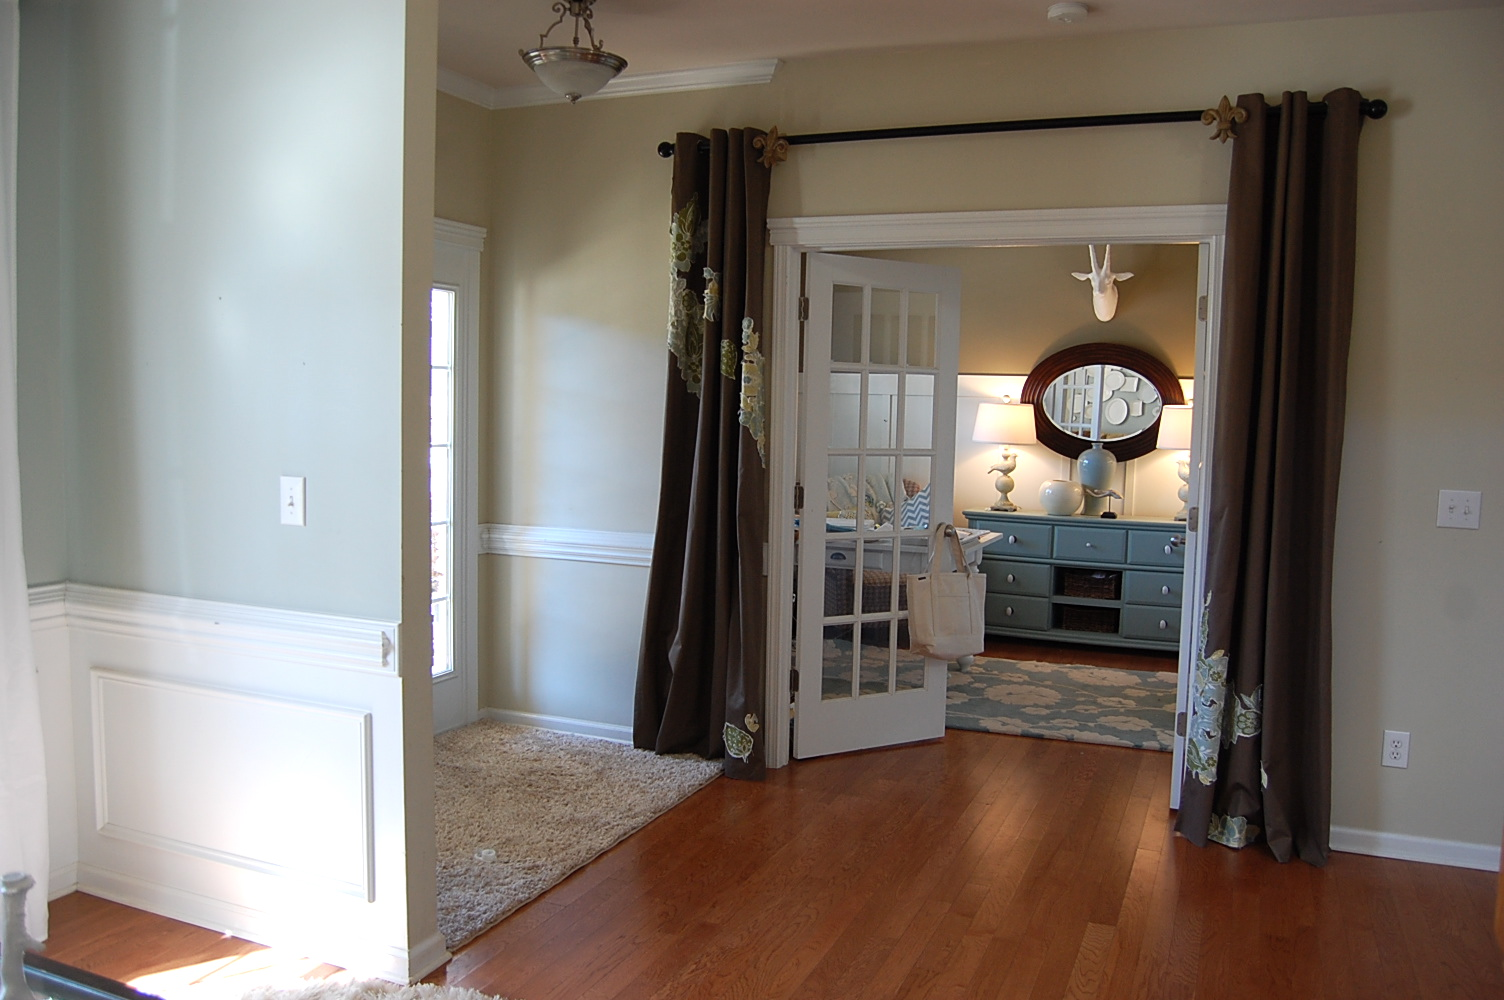 Nesting Place Paint Colors A Linky For Your